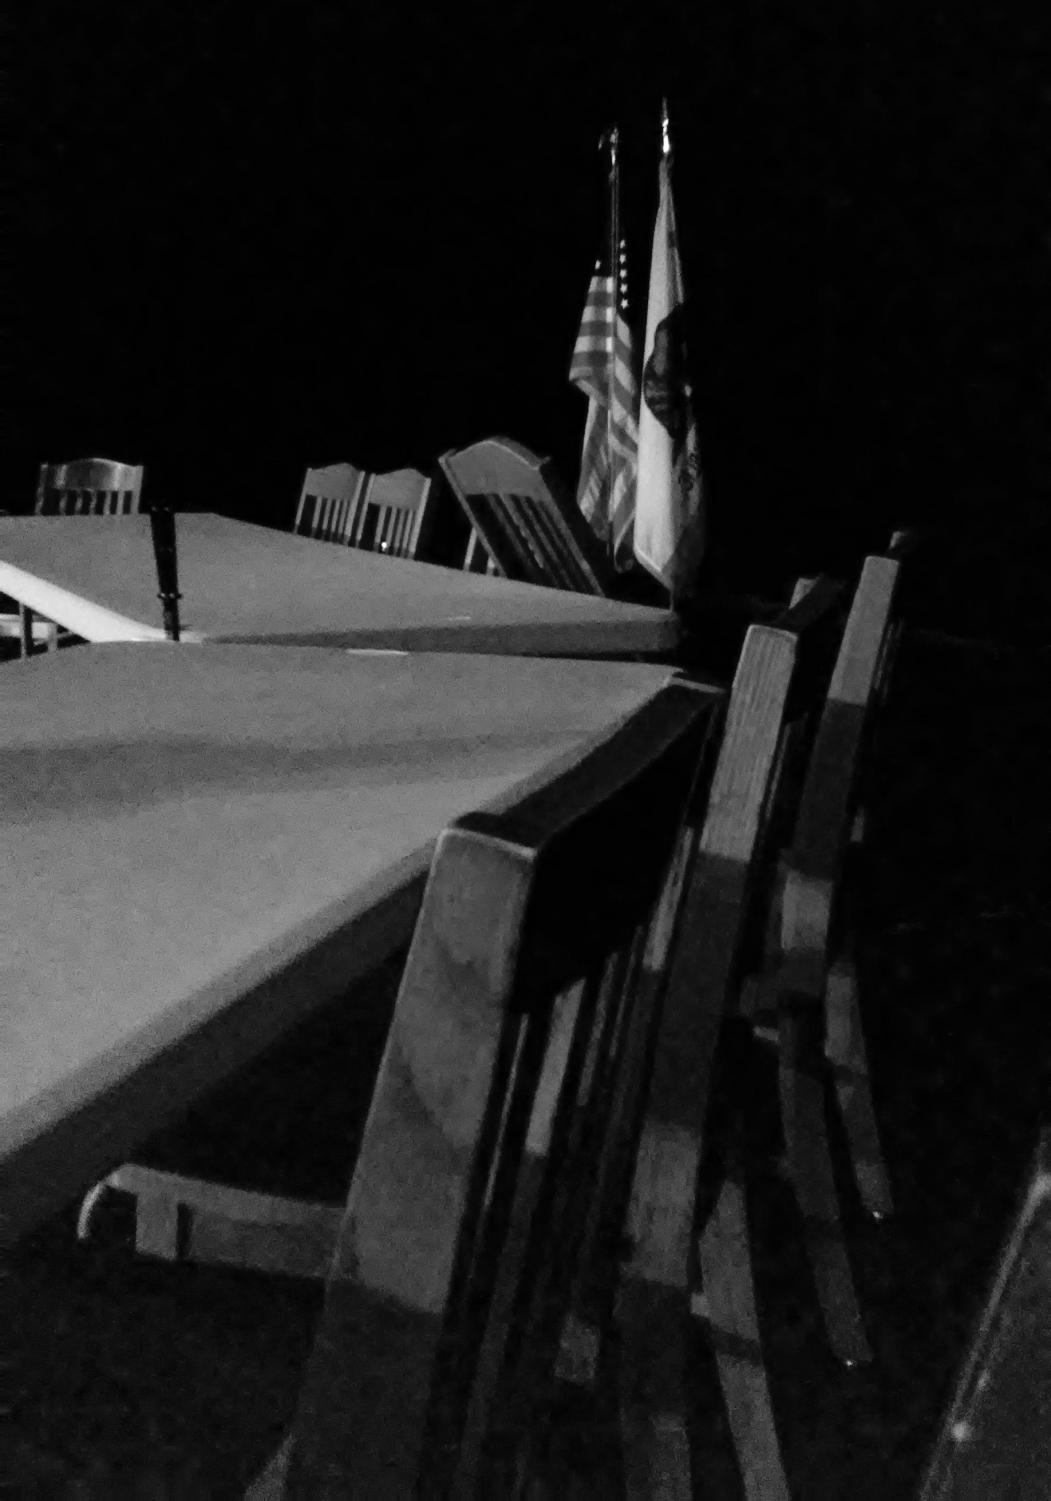 Juror 10's chair remains empty until the cast of 12 Angry Jurors can fill the role. Will they be able to do it in time for opening night?